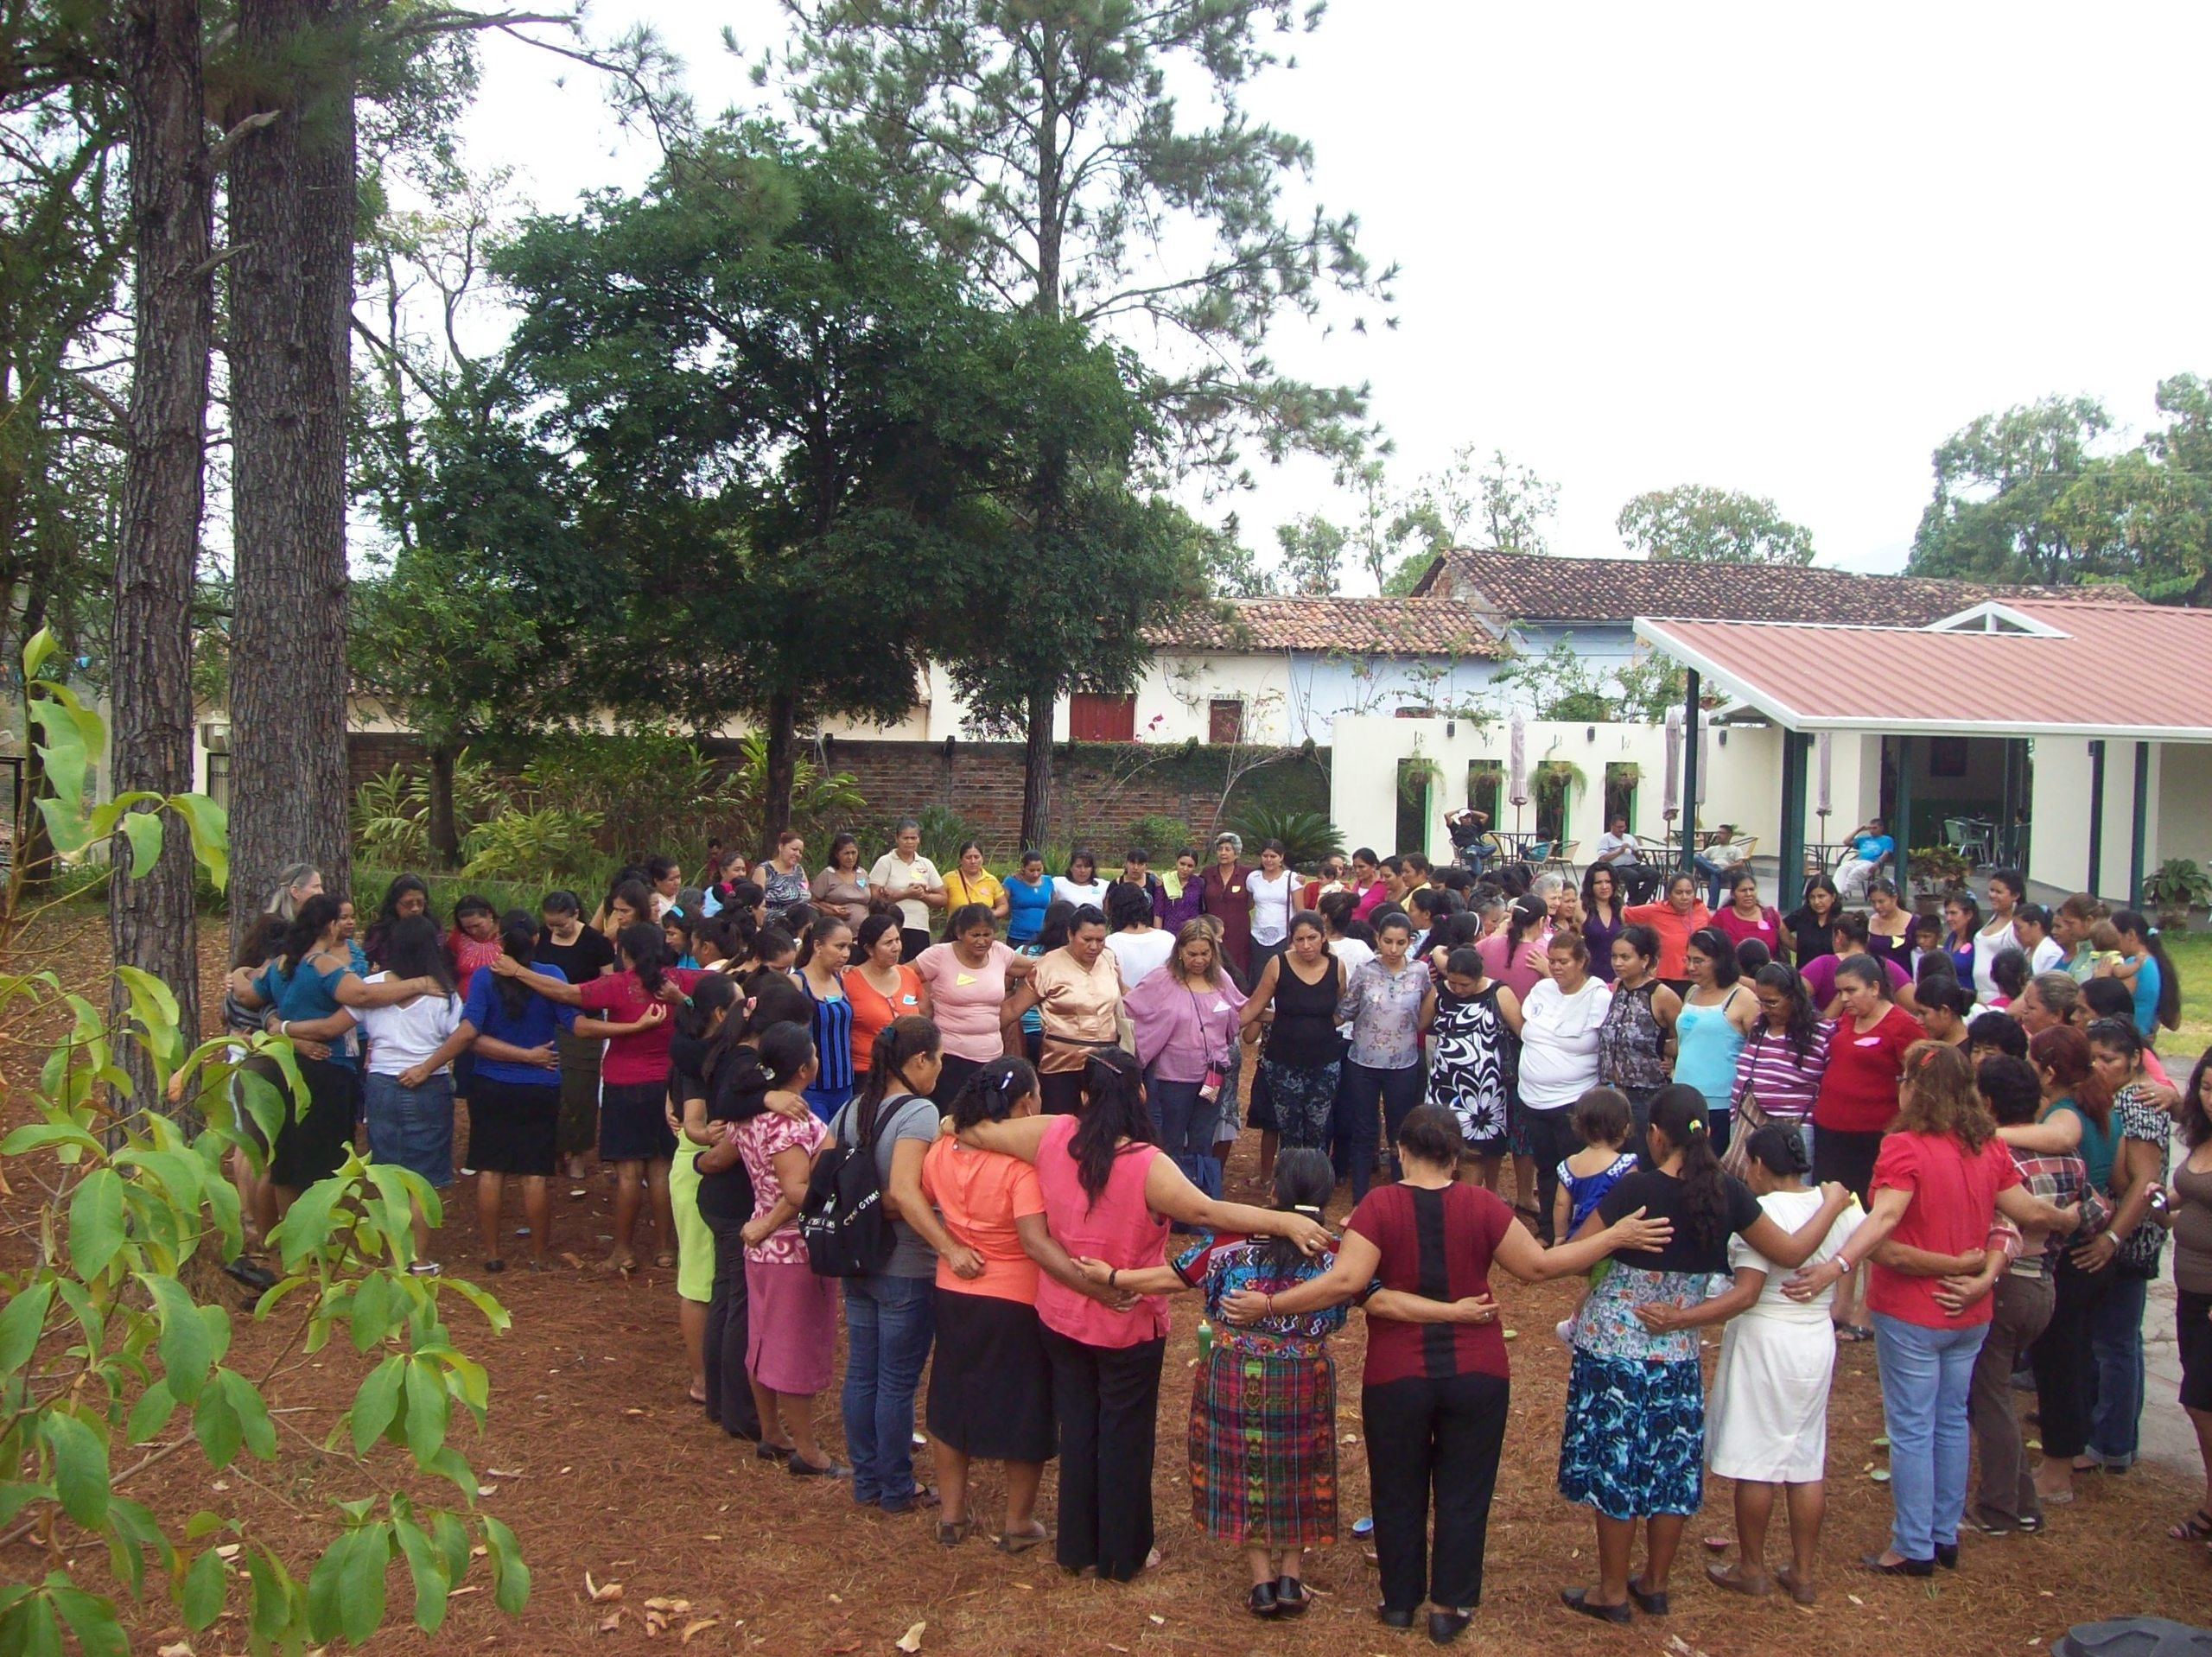 A large group of women standing outside in a circle wiht their arms around each other.